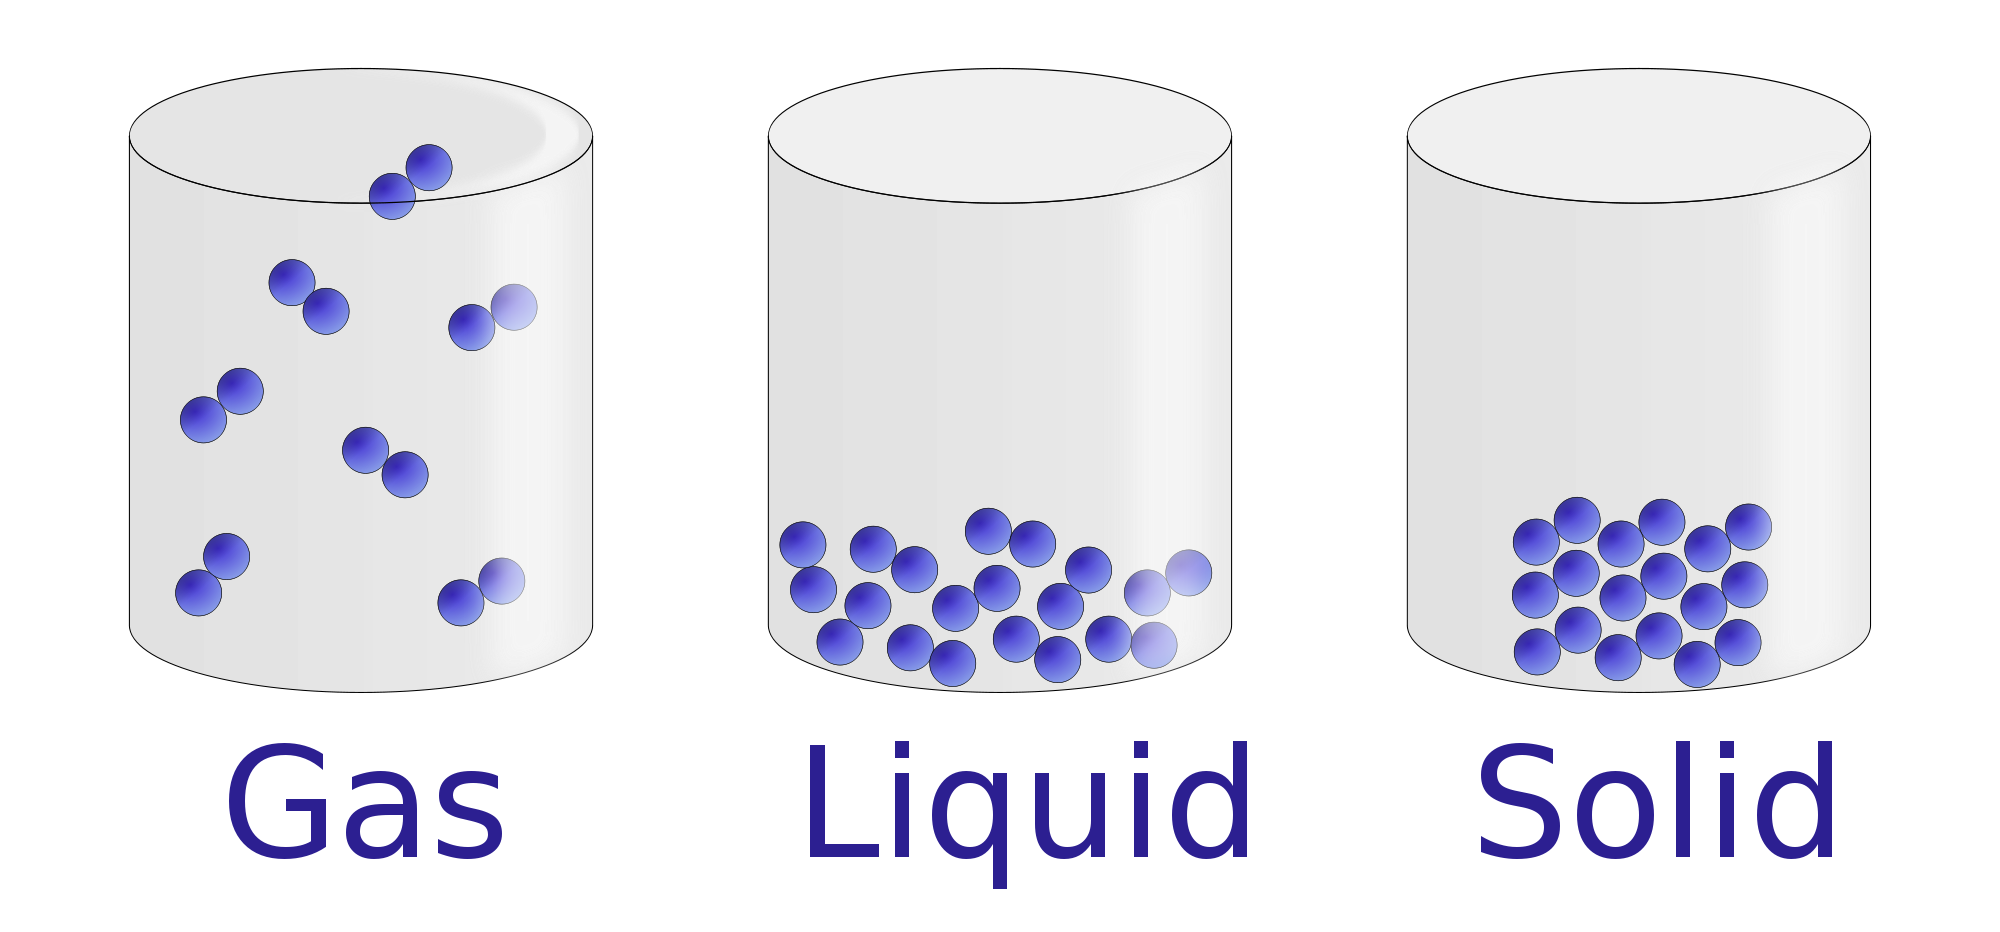 Properties Of Liquids Chemistry Visionlearning